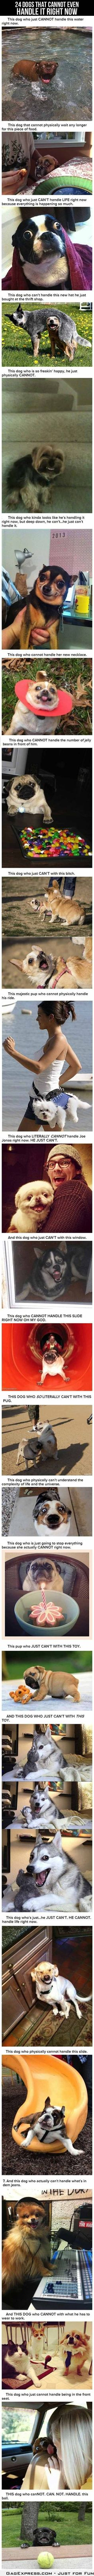 Dogs that just can't handle it